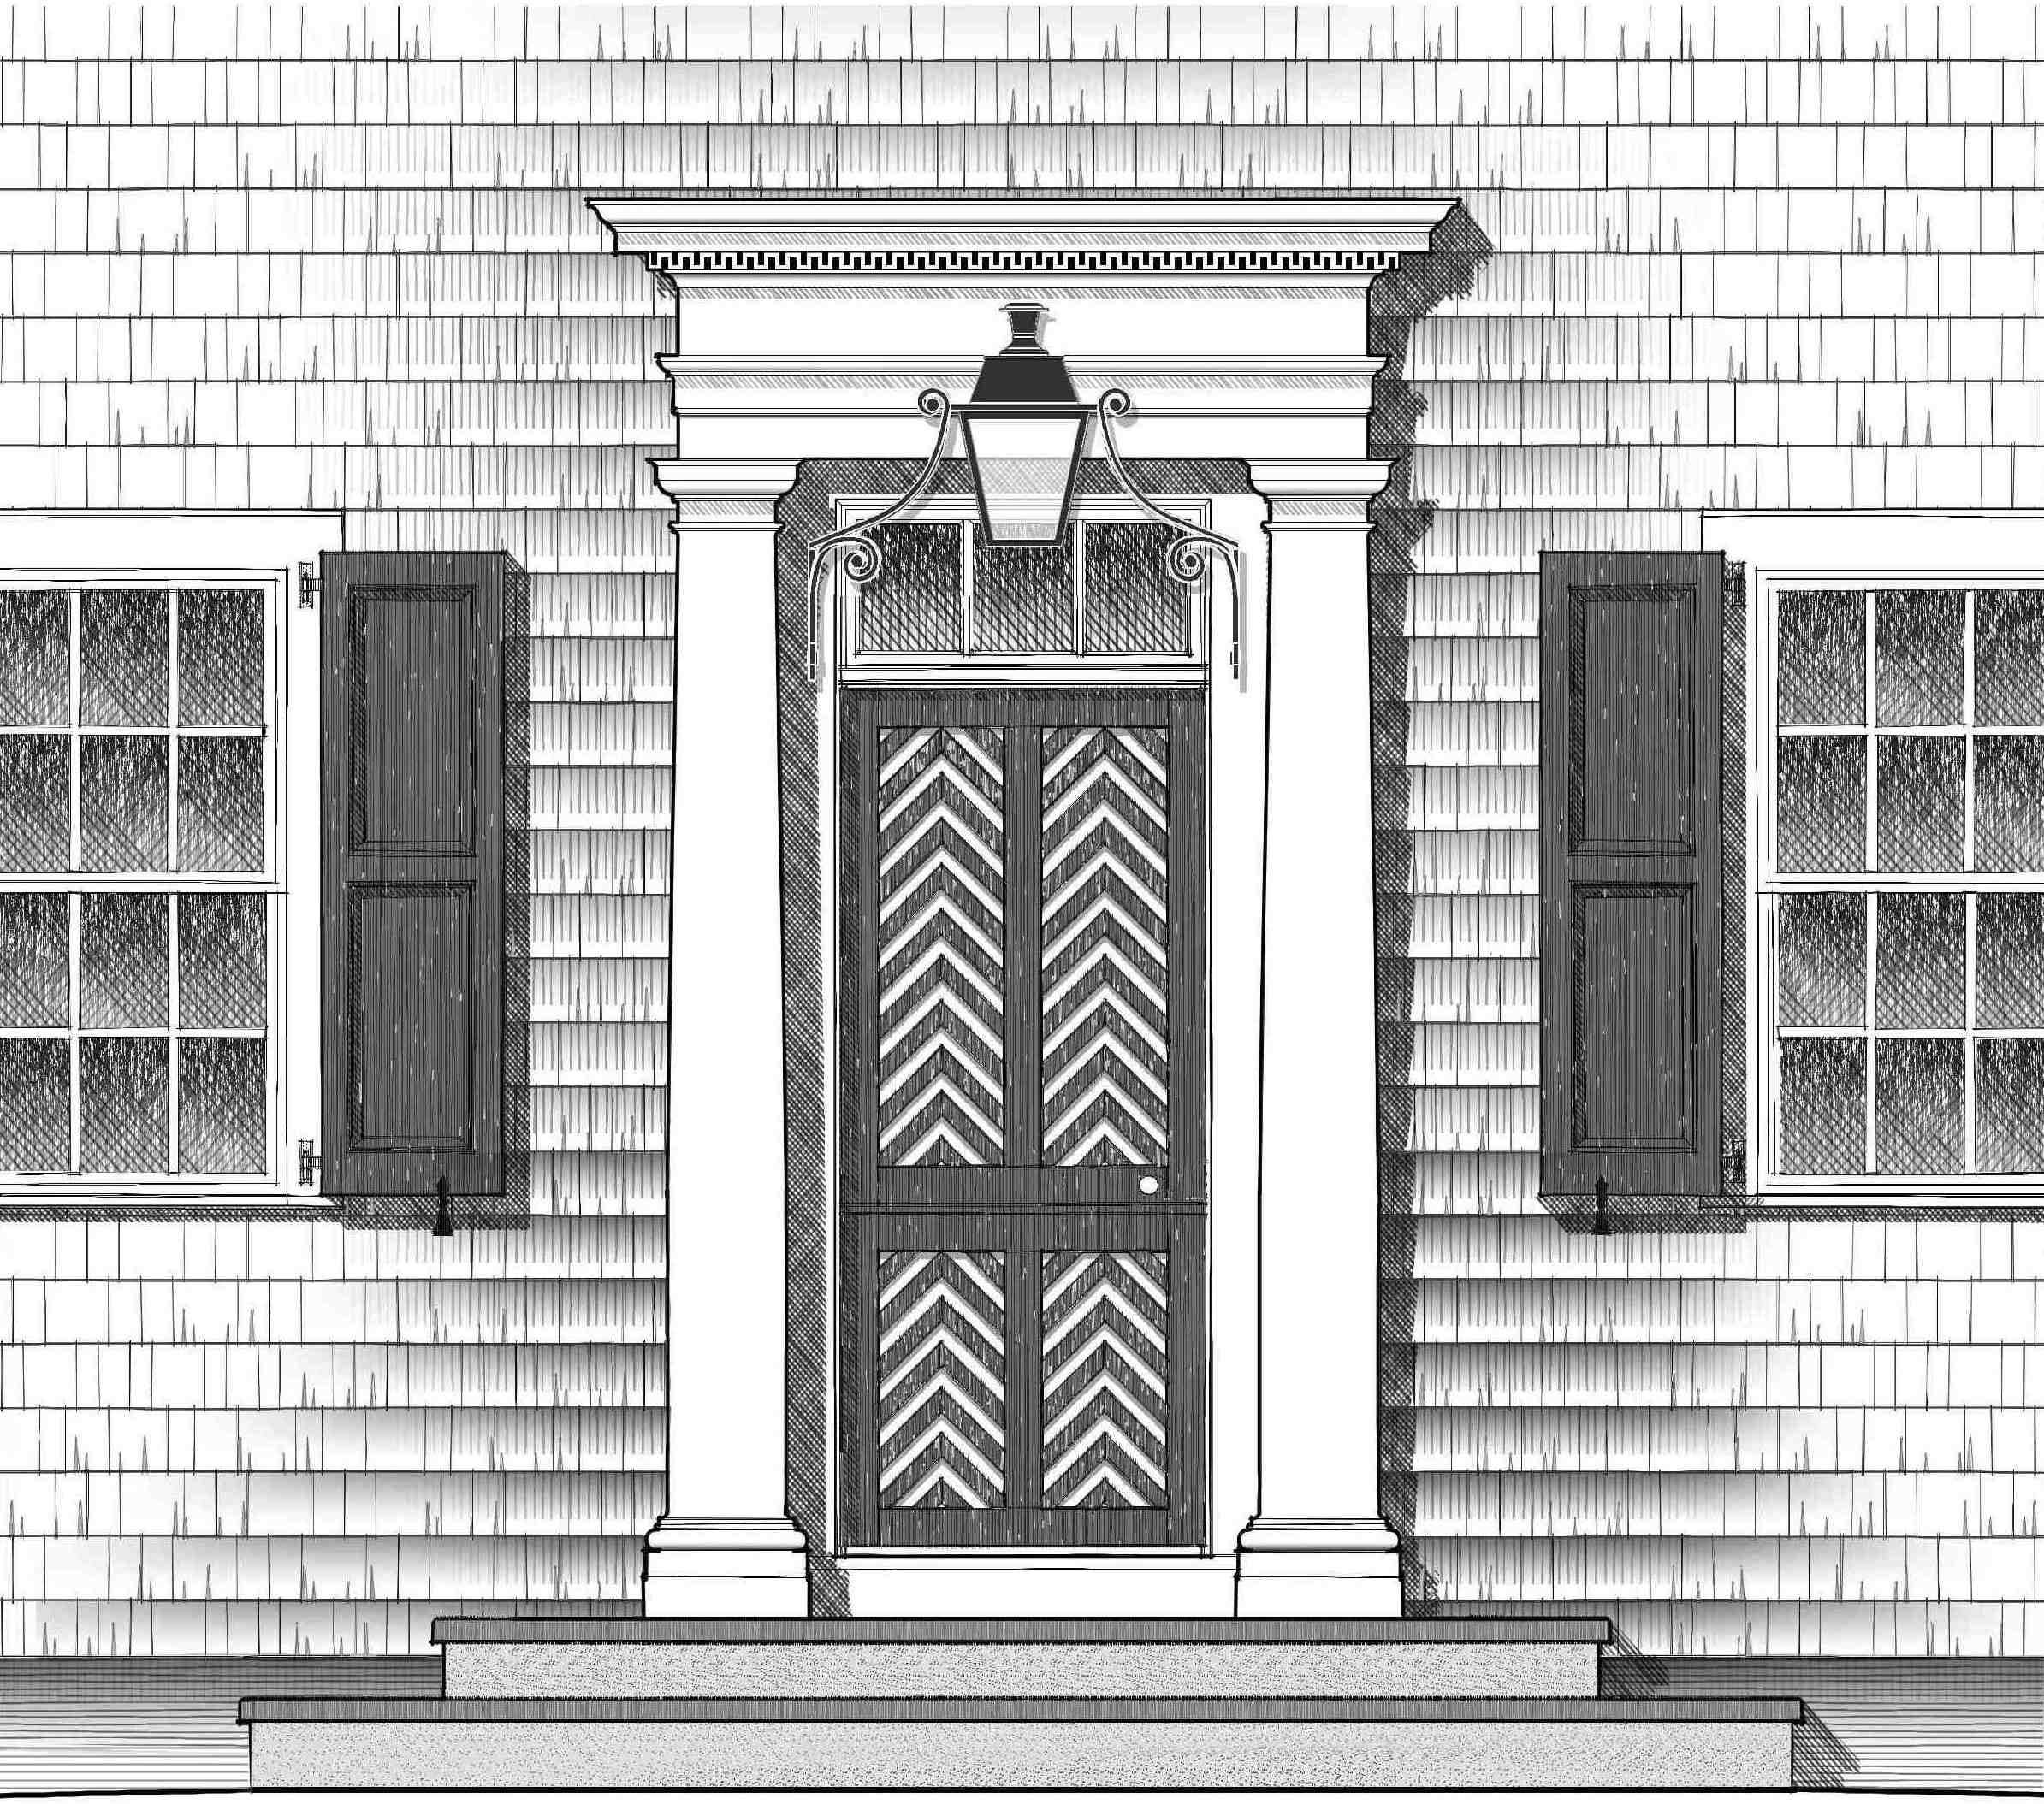 6 SOUTHAMPTON COTTAGE WEBSITE DOOR SKETCH 2018.jpg